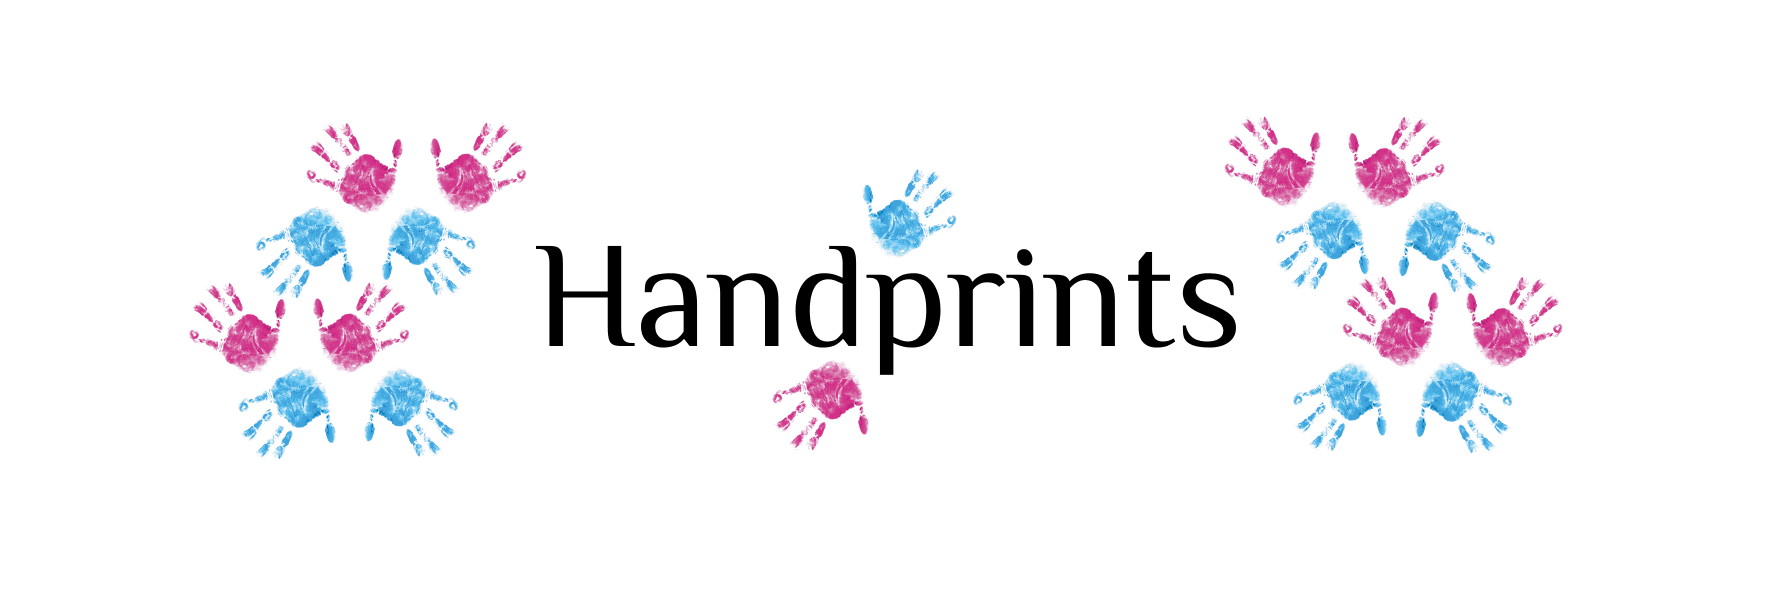 Header Handprints